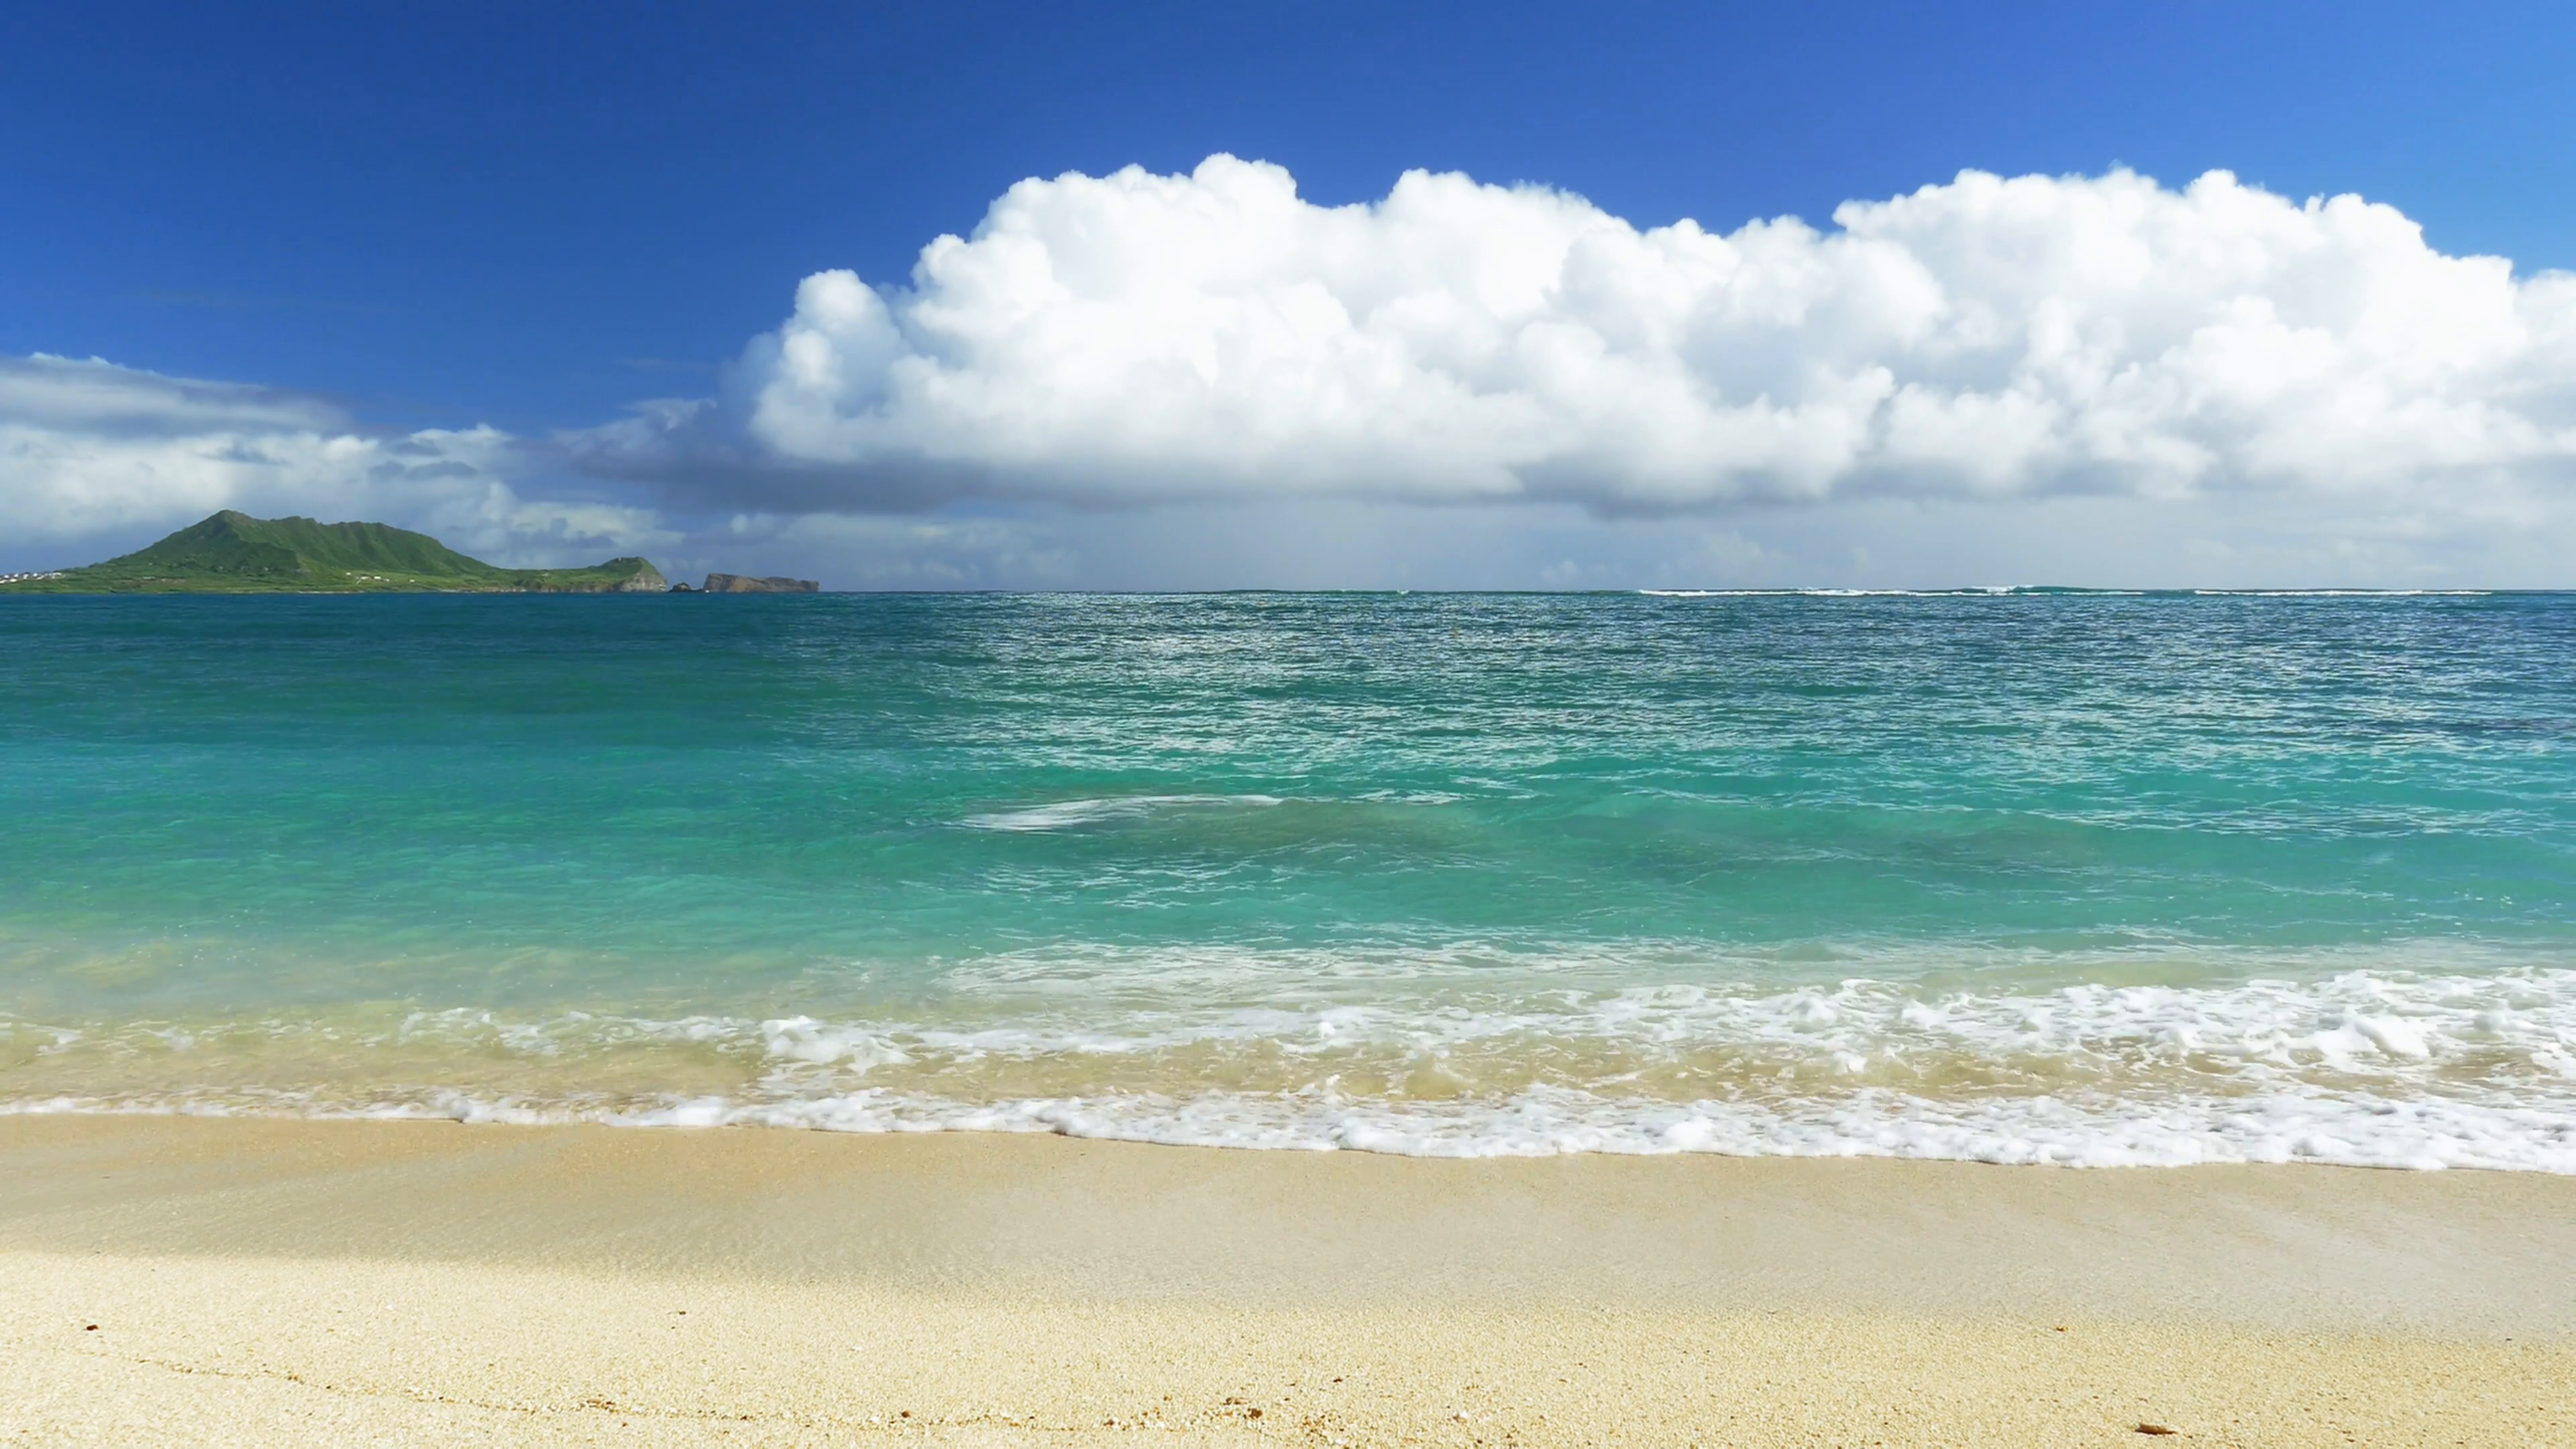 Idyllic Island Beach Shore Sky Nature Beautiful Footage Sea Water Vacation  Travel Tourism Hawaii Peaceful HD Stock Video Footage - VideoBlocks - Sea PNG HD